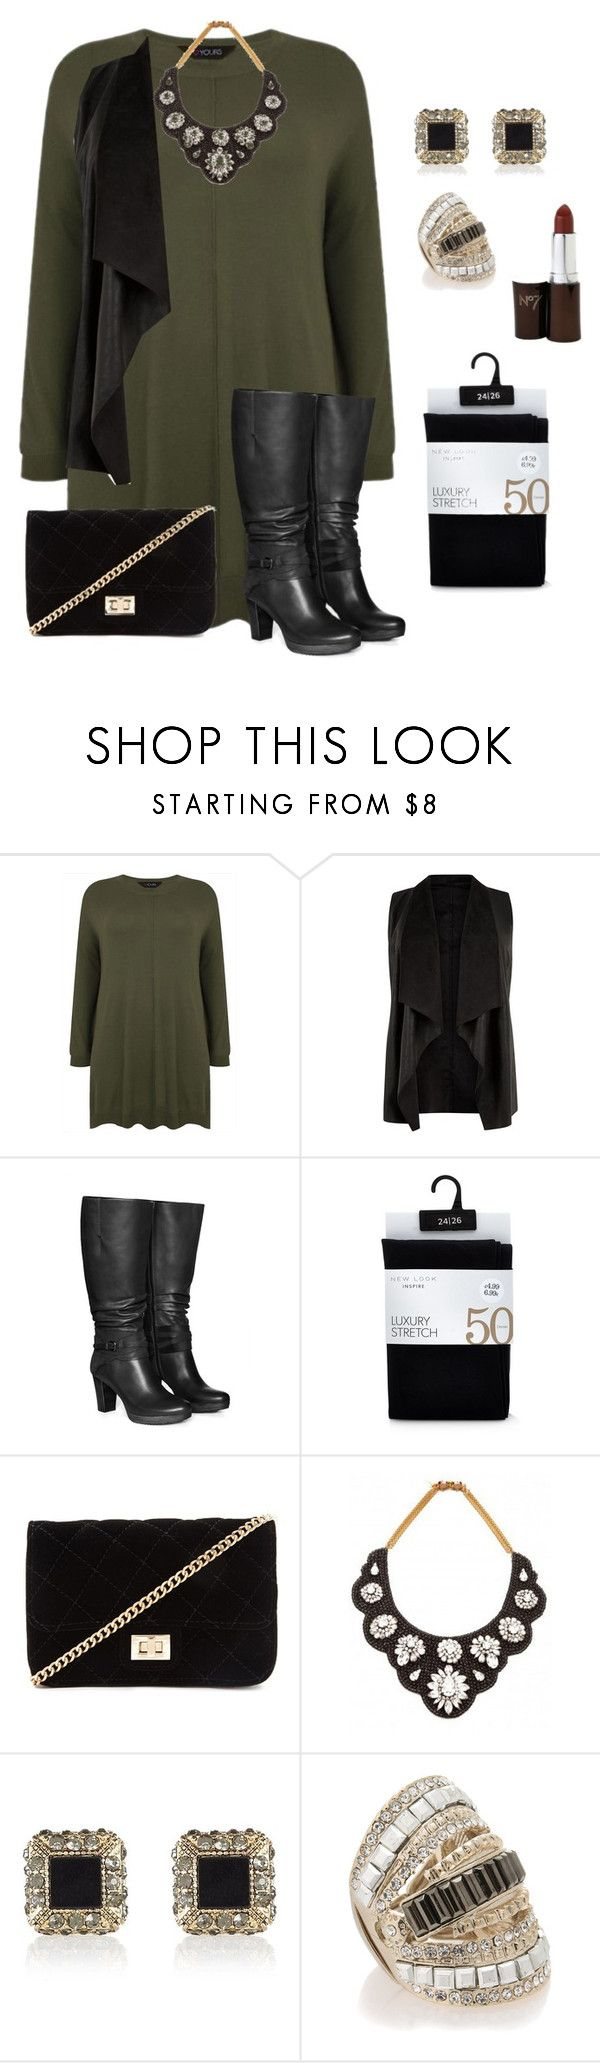 """""""plus size fall/winter chic and edgy"""" by kristie-payne ❤ liked on Polyvore featuring Jilsen Quality Boots, Forever 21, Darya London, River Island and Oasis"""